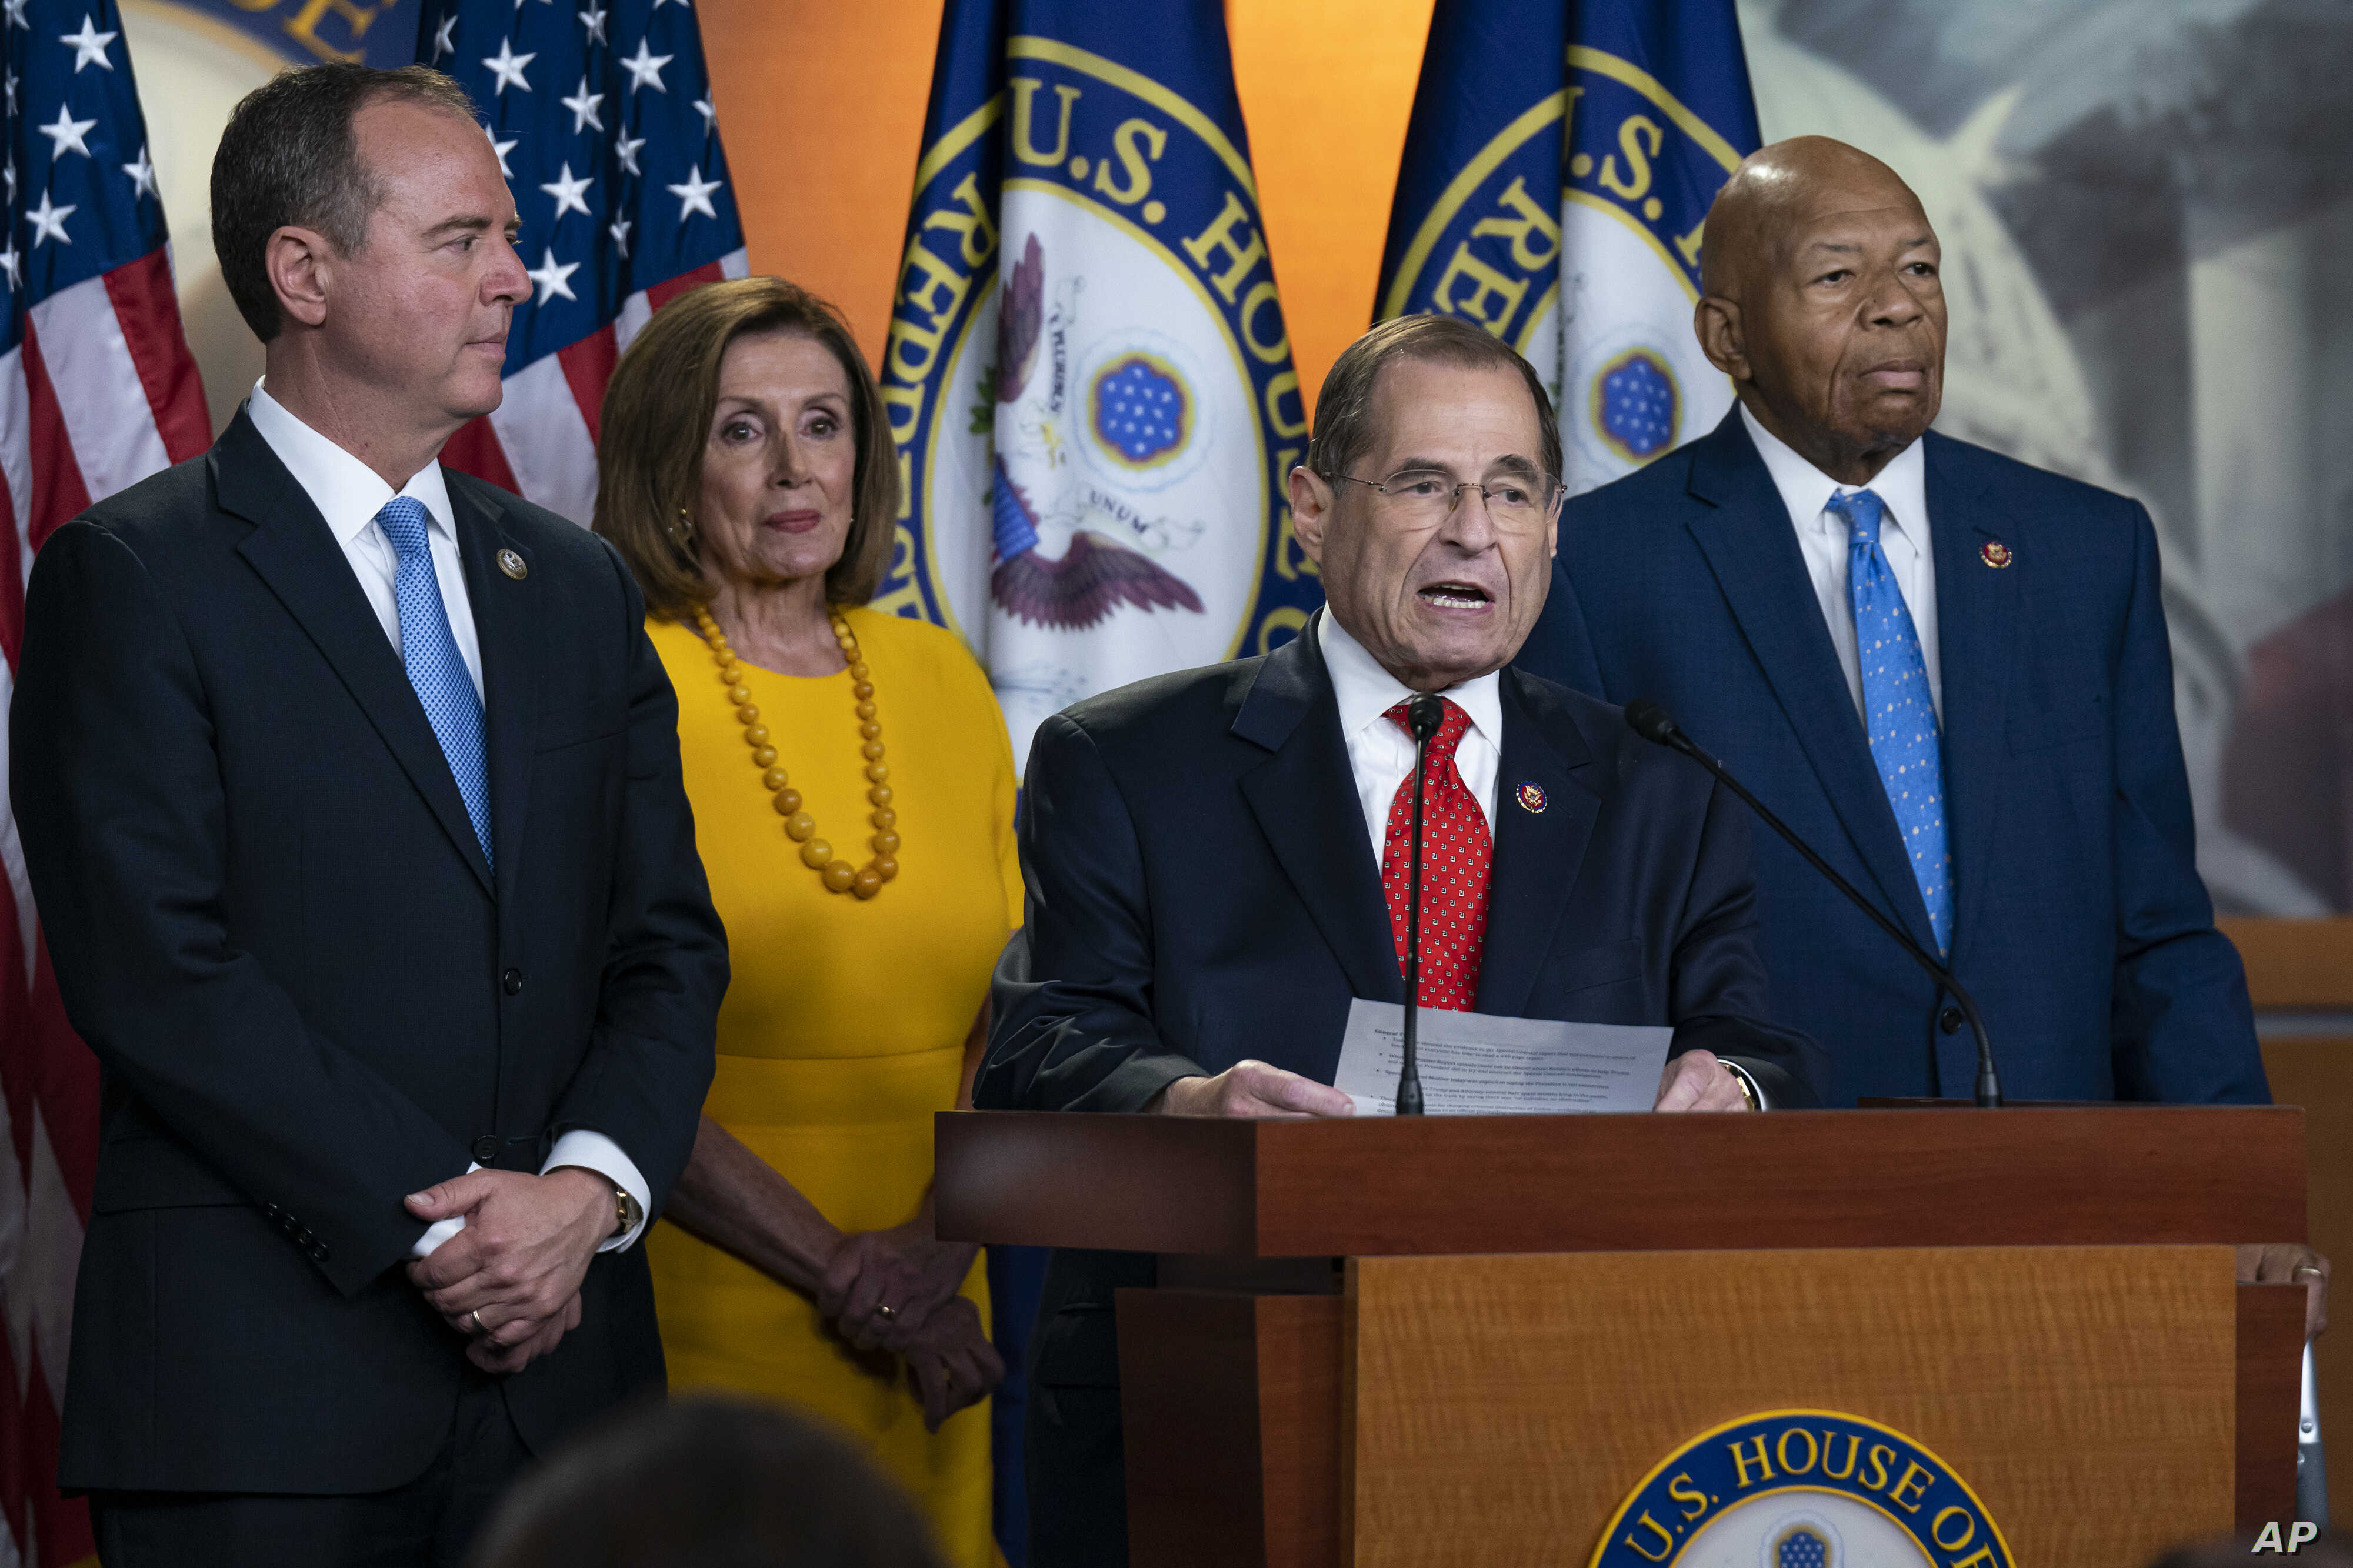 House Intelligence Committee Chairman Adam Schiff,  Speaker of the House Nancy Pelosi, House Judiciary Committee Chairman Jerrold Nadler, and House Oversight Committee Chairman Elijah Cummings after hearings with former special counsel Robert Mueller, July 24, 2019, in Washington.